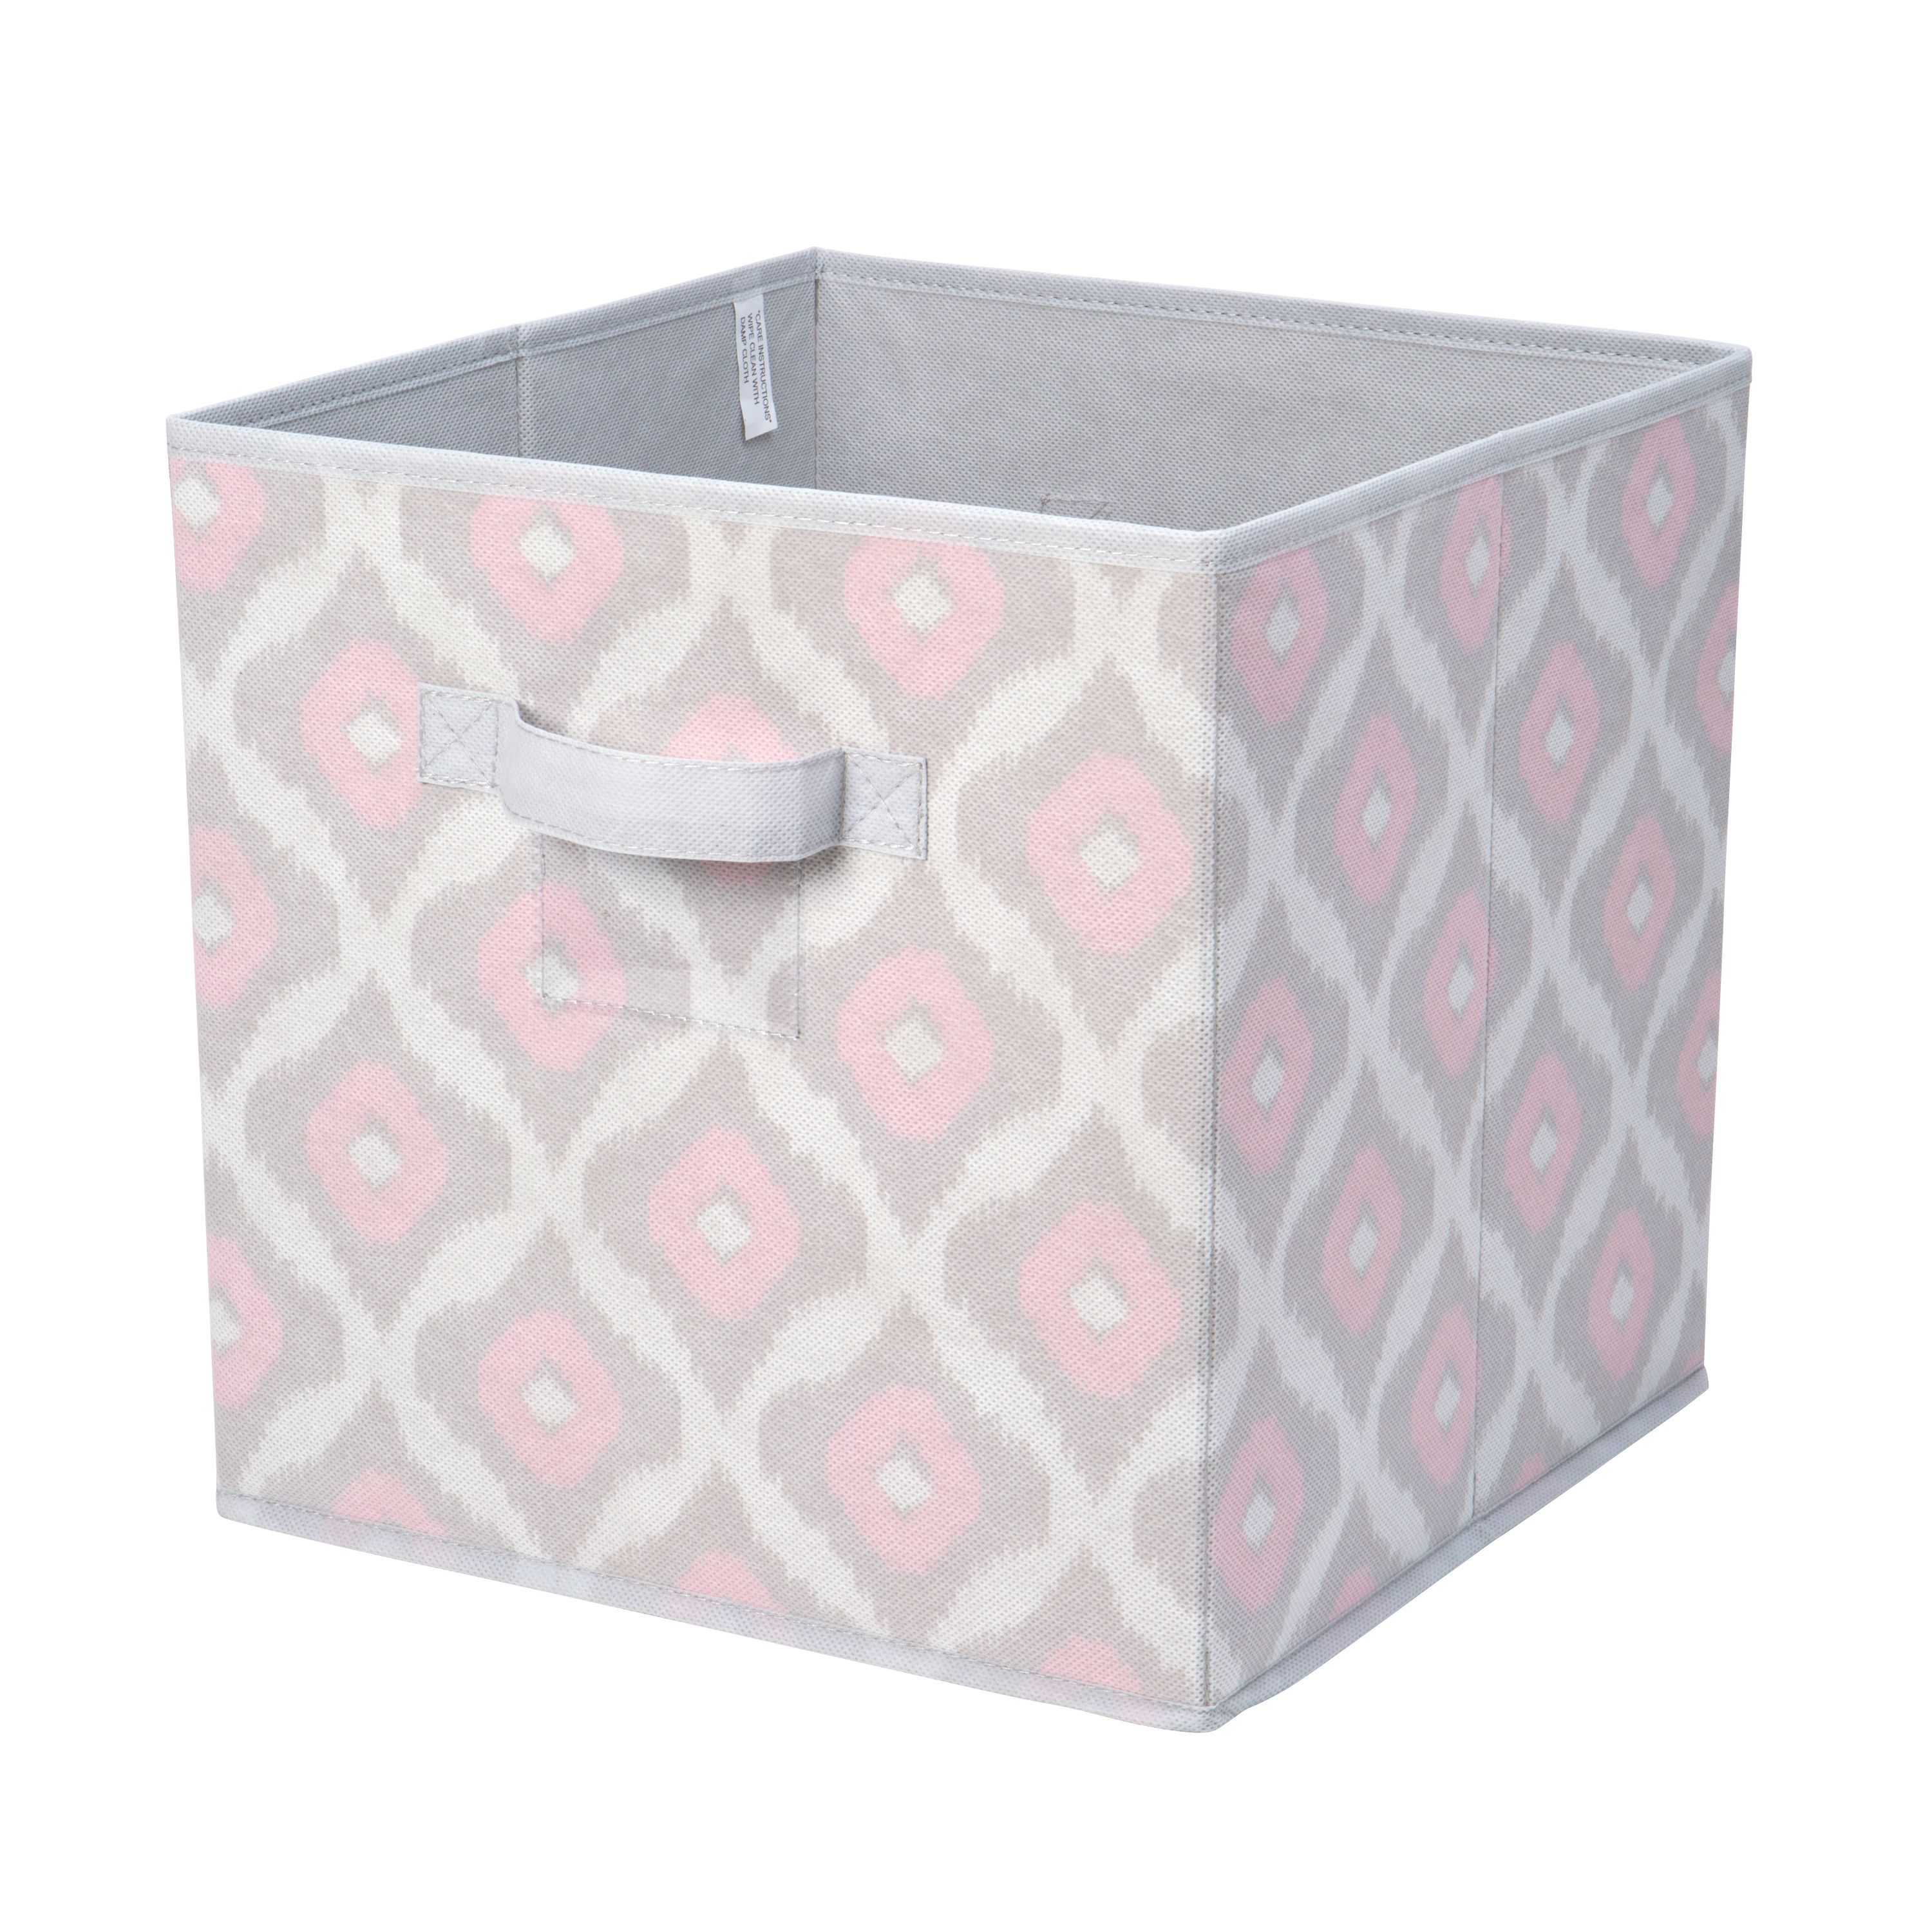 Candie Couture By Macbeth Collection STORAGE BOX CUBE 12X12   IKAT